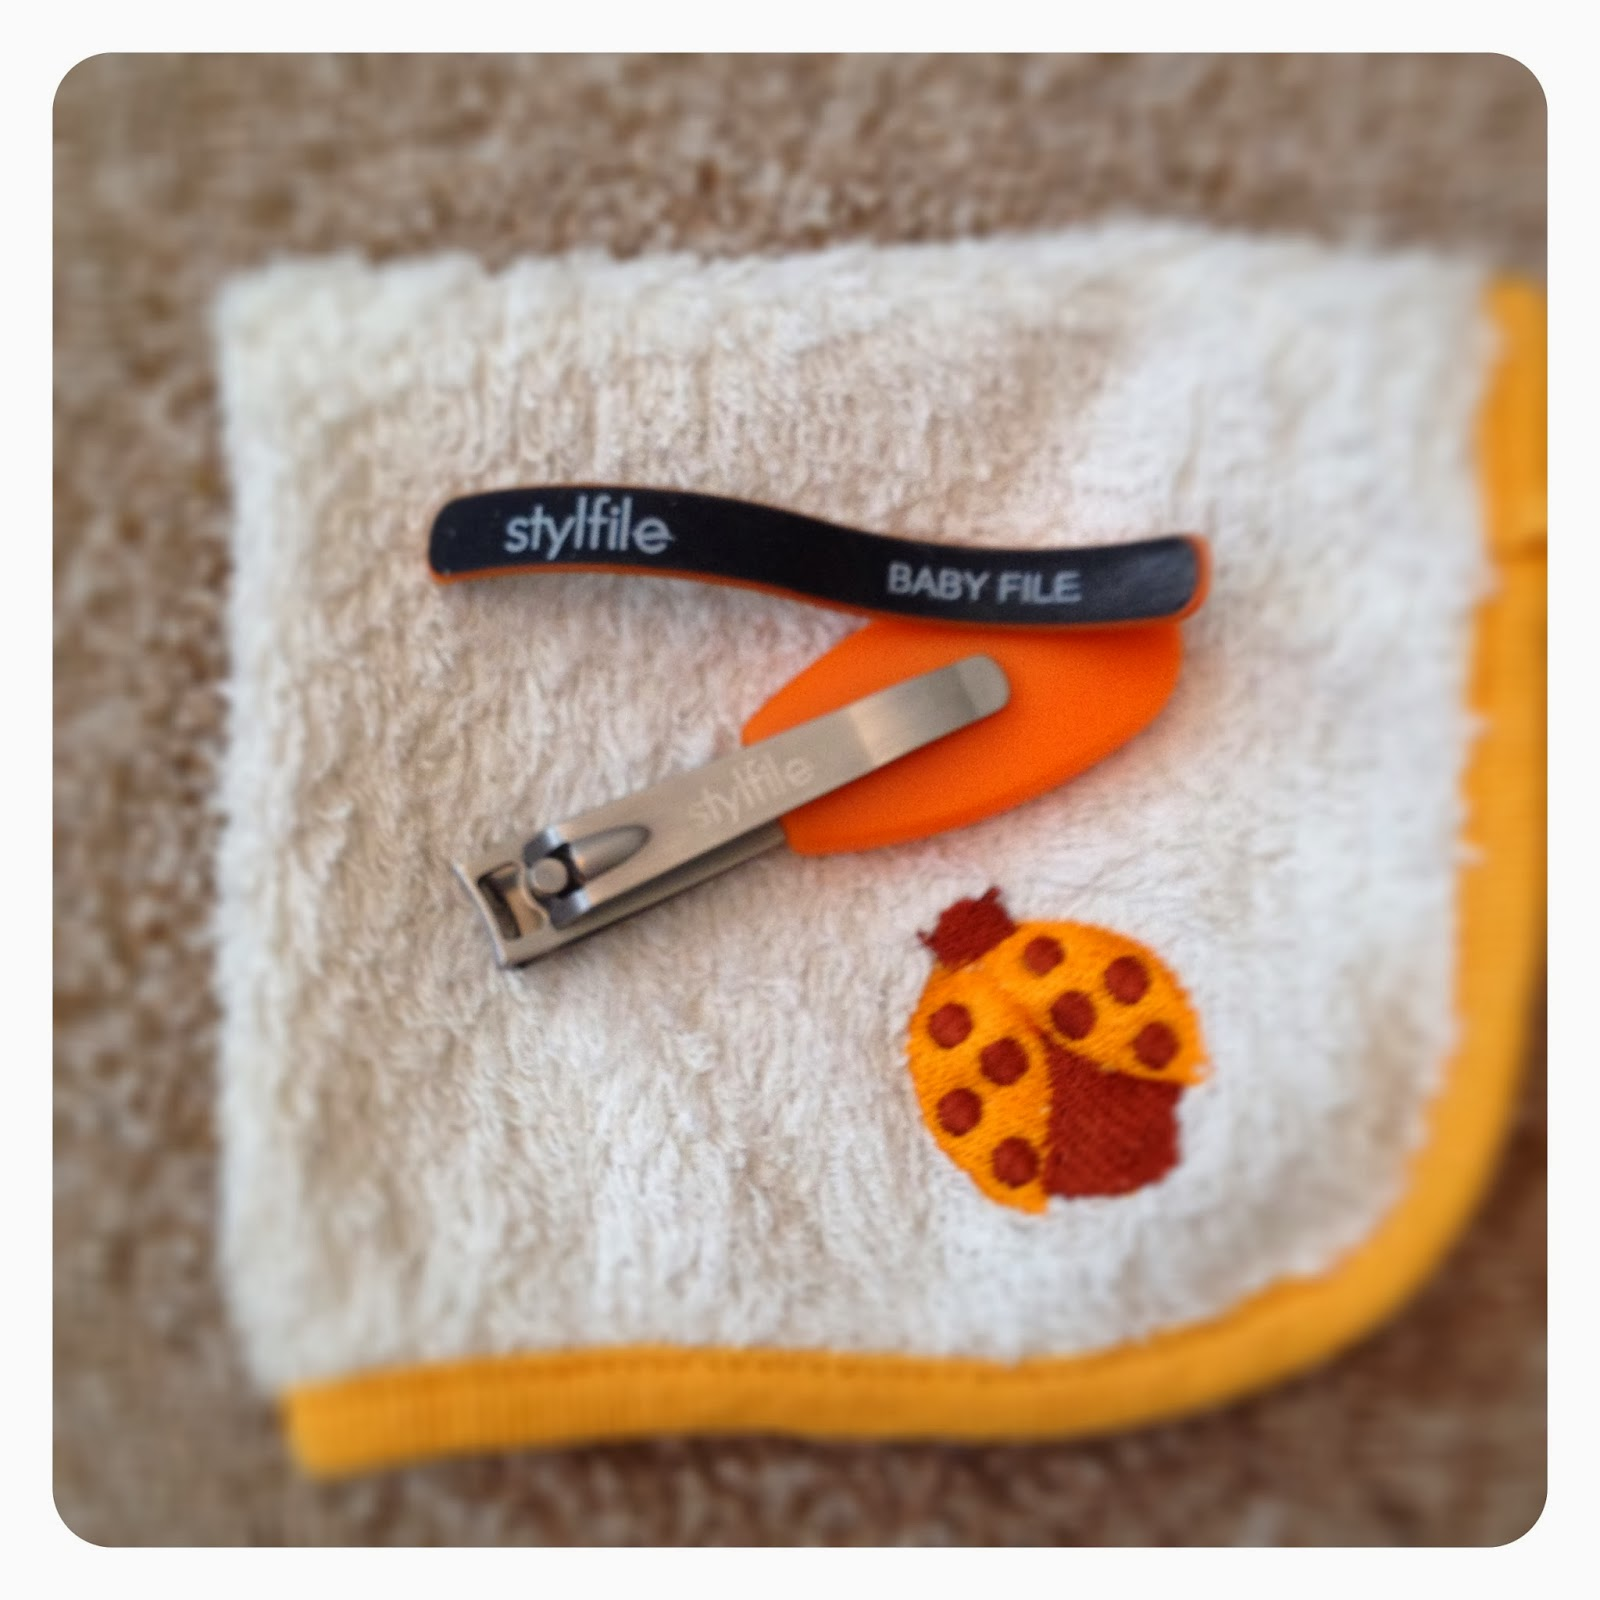 mamasVIB | V. I. BEAUTY: Nail it! Why these Stylfile baby nail clippers are the best EVER!, stylfile, baby nail clippers, the apprentice, nail files for babies, nail clippers for baby, best baby buys